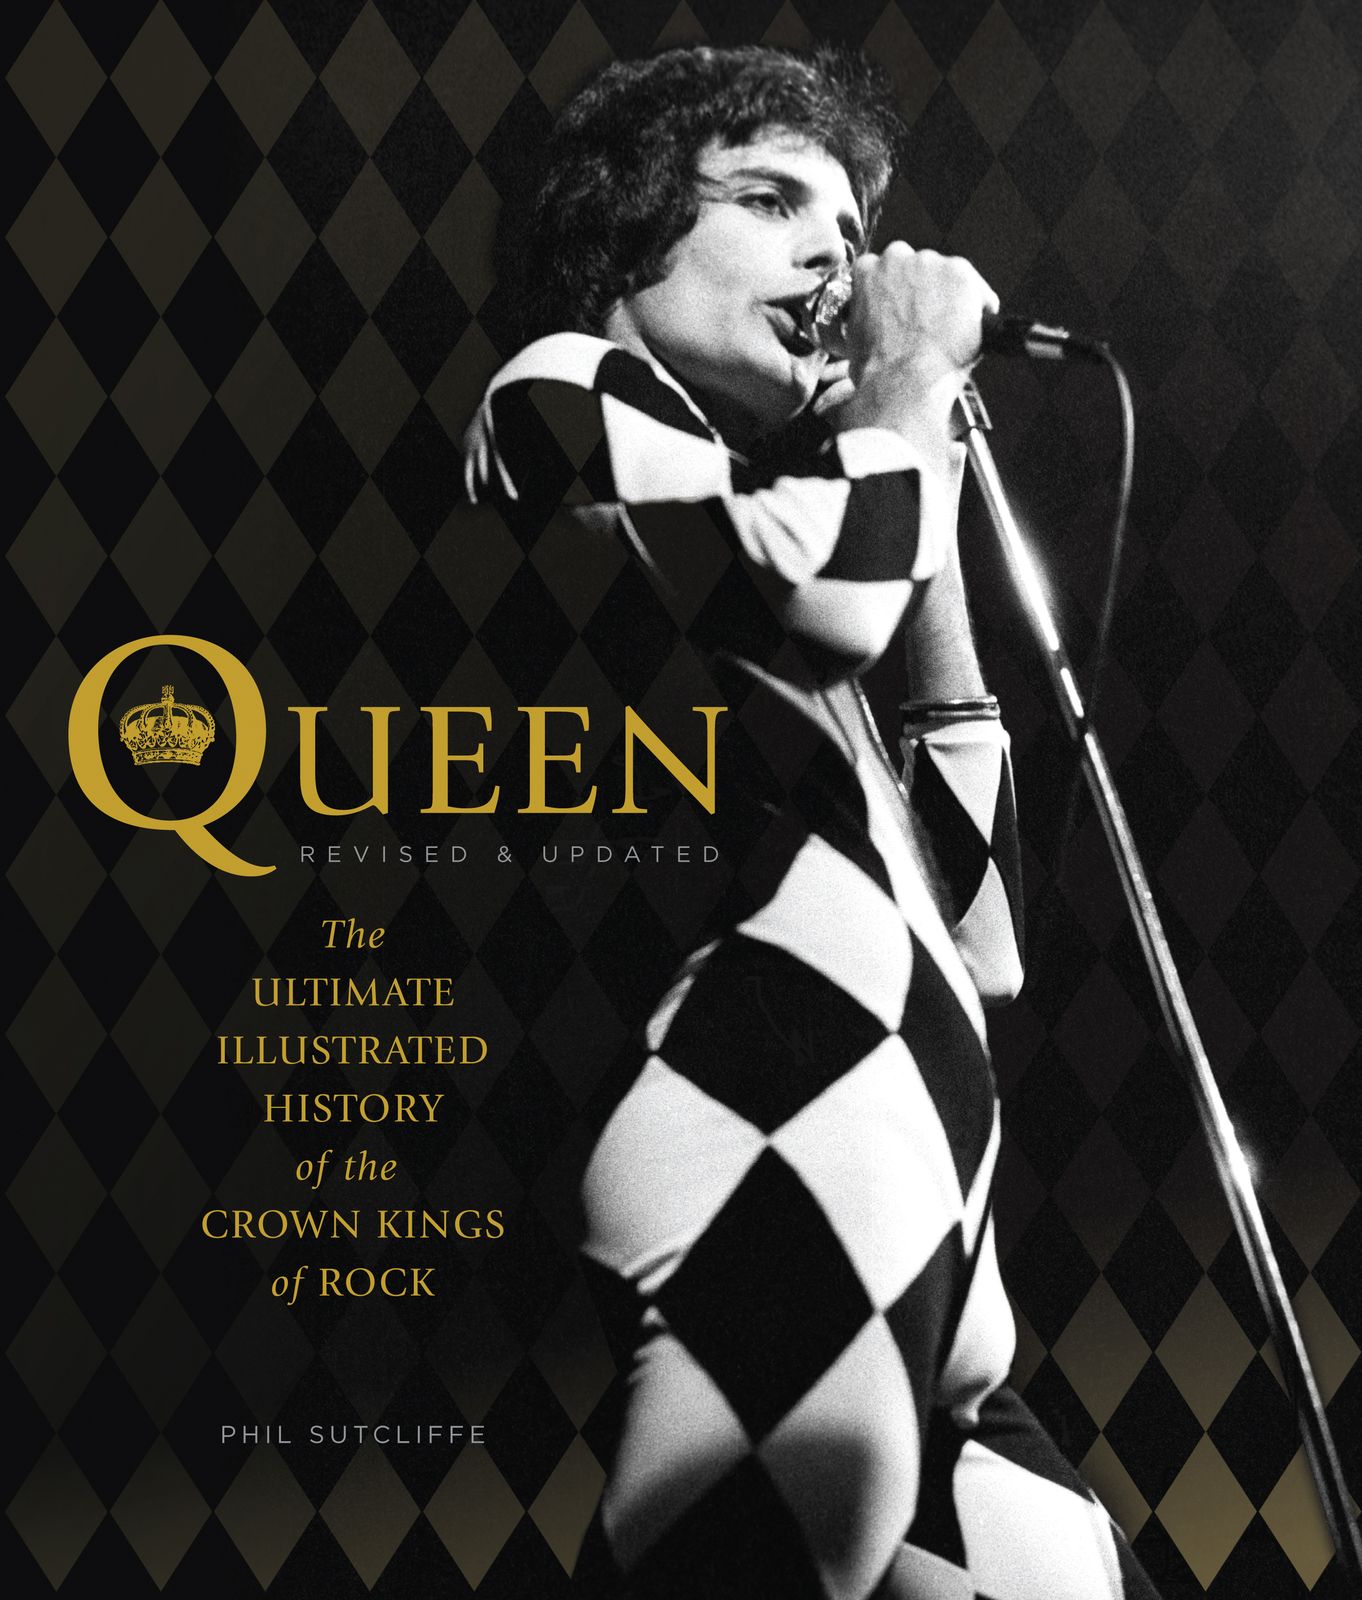 Queen, Revised & Updated by Phil Sutcliffe image